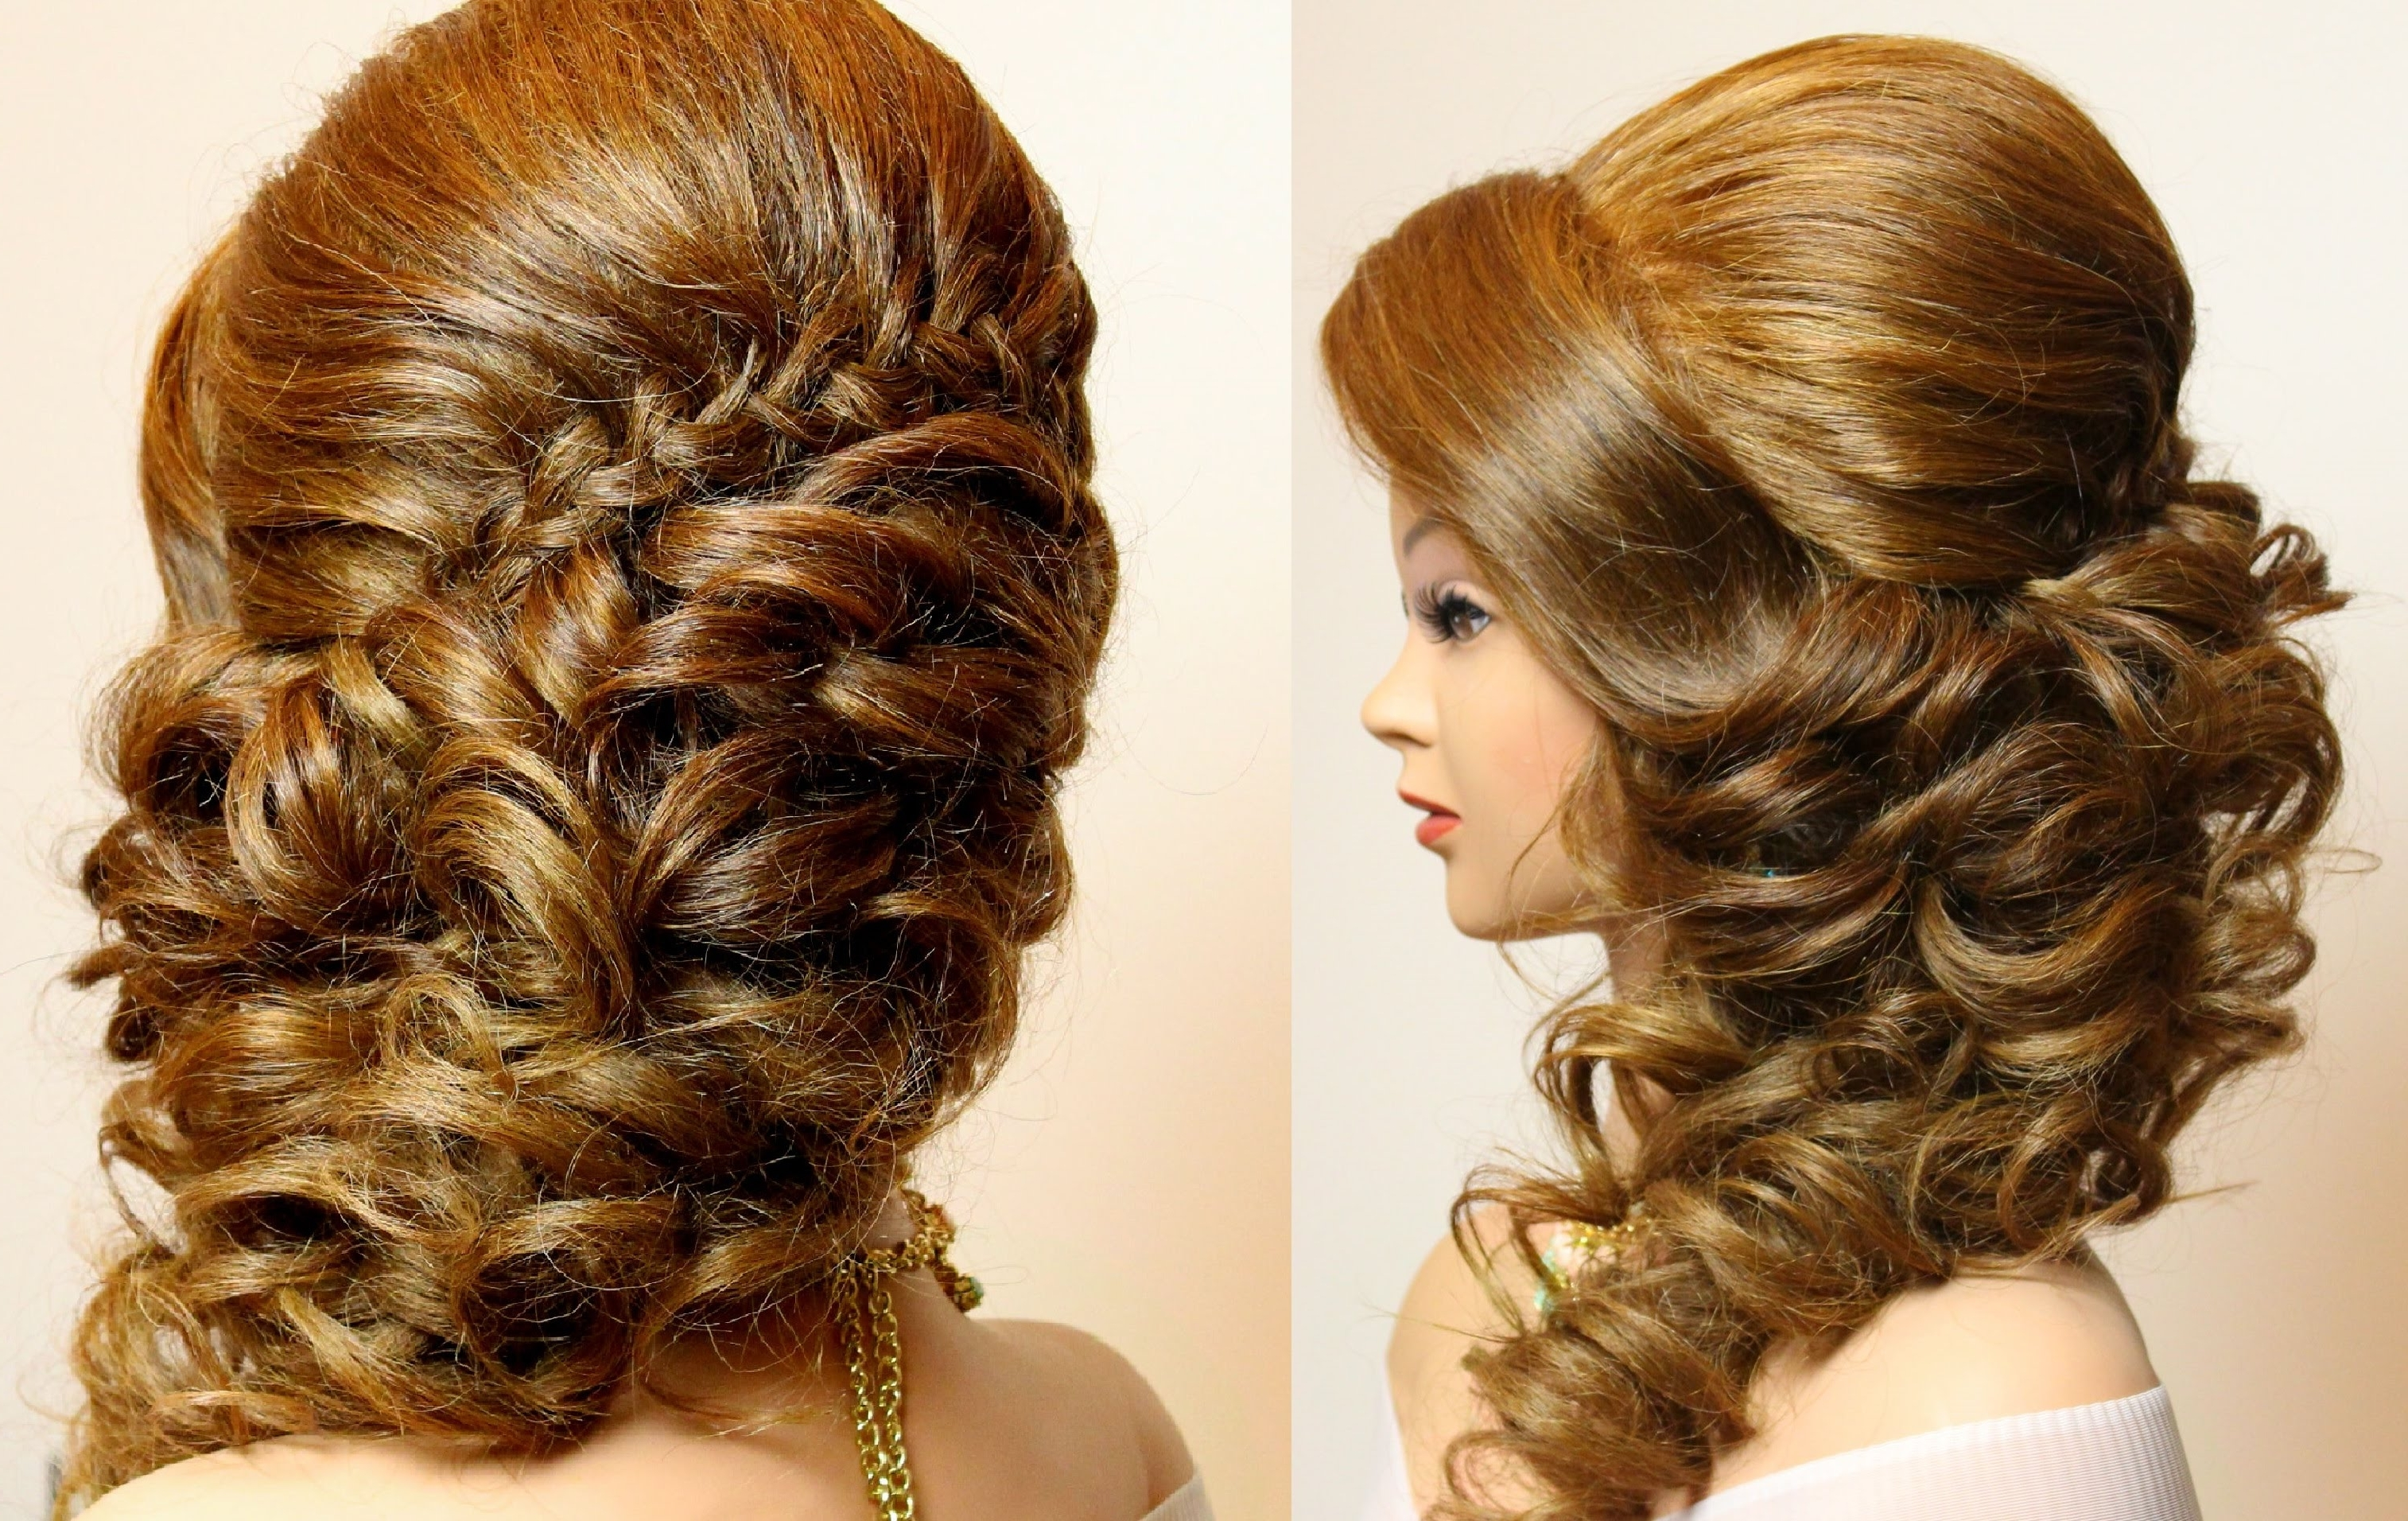 Bridal Hairstyle With Braid And Curls (View 7 of 15)